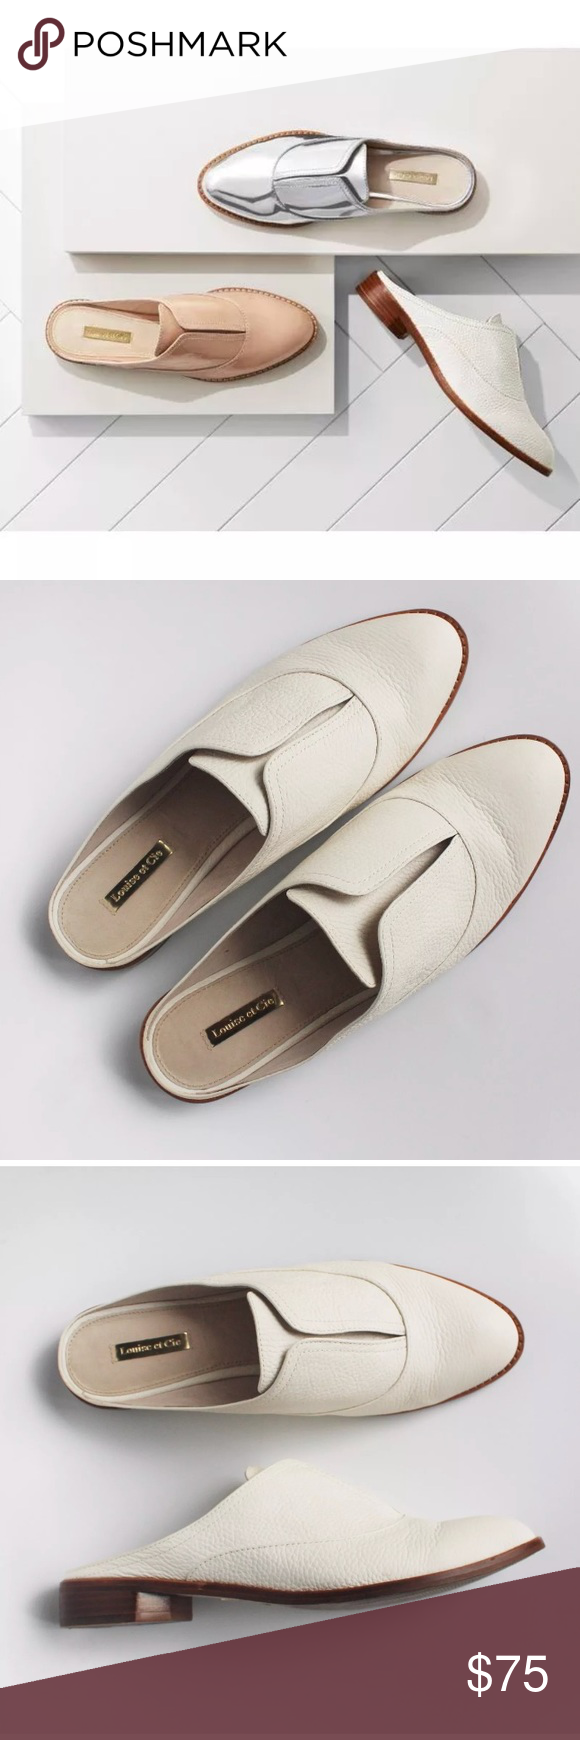 8a21bcf7f53 LOUISE ET CIE FREYDA LOAFER MULES Size 10